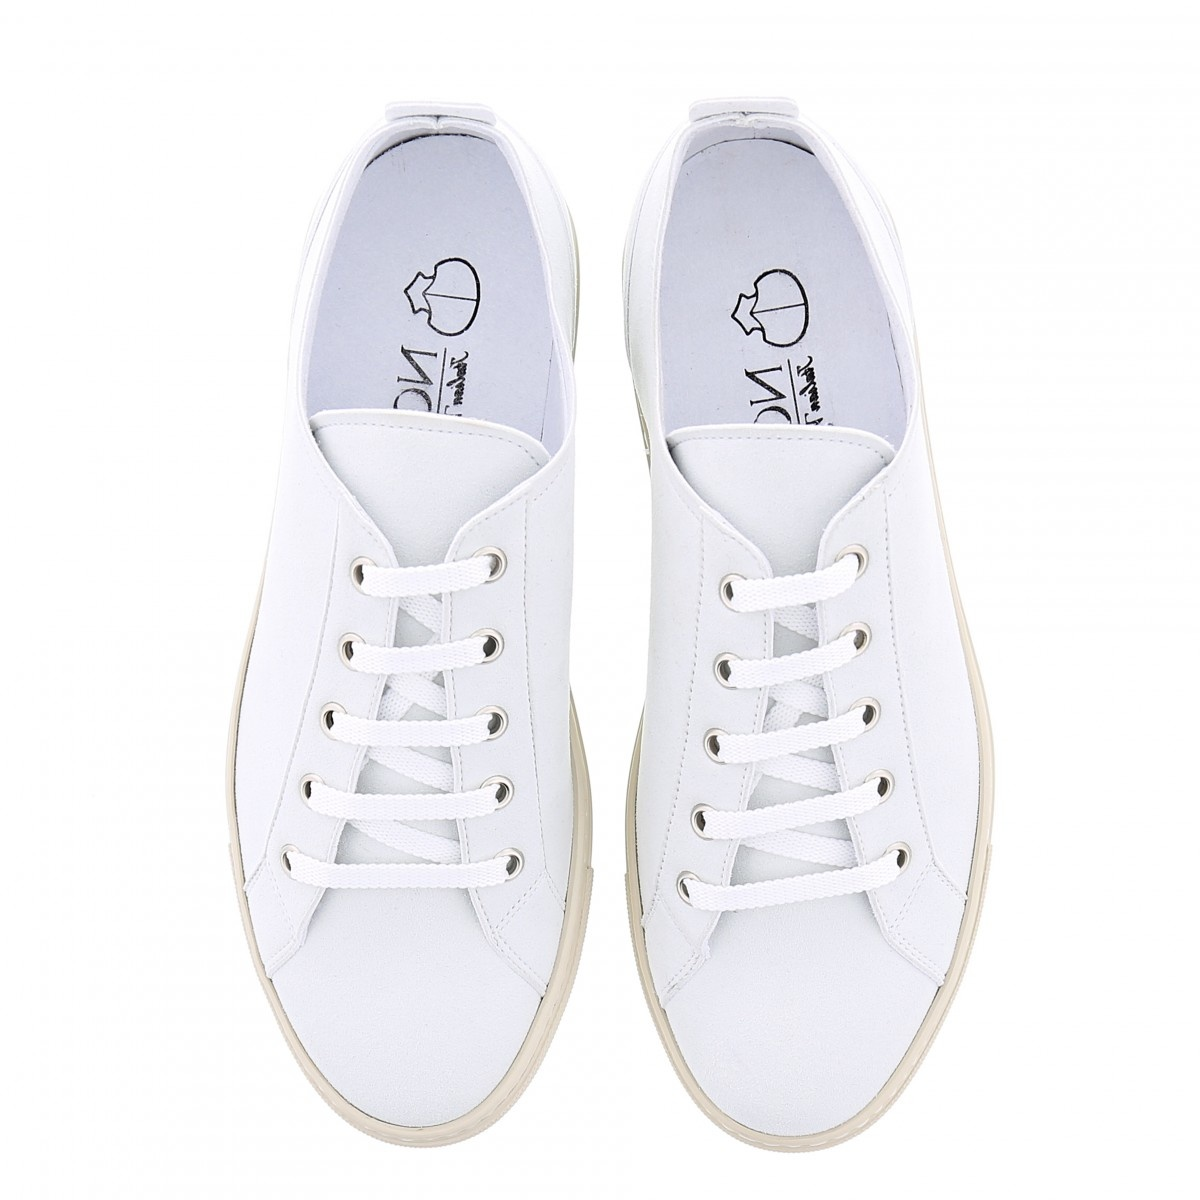 NOAH Sneaker Unisex Dominique Suede Ice